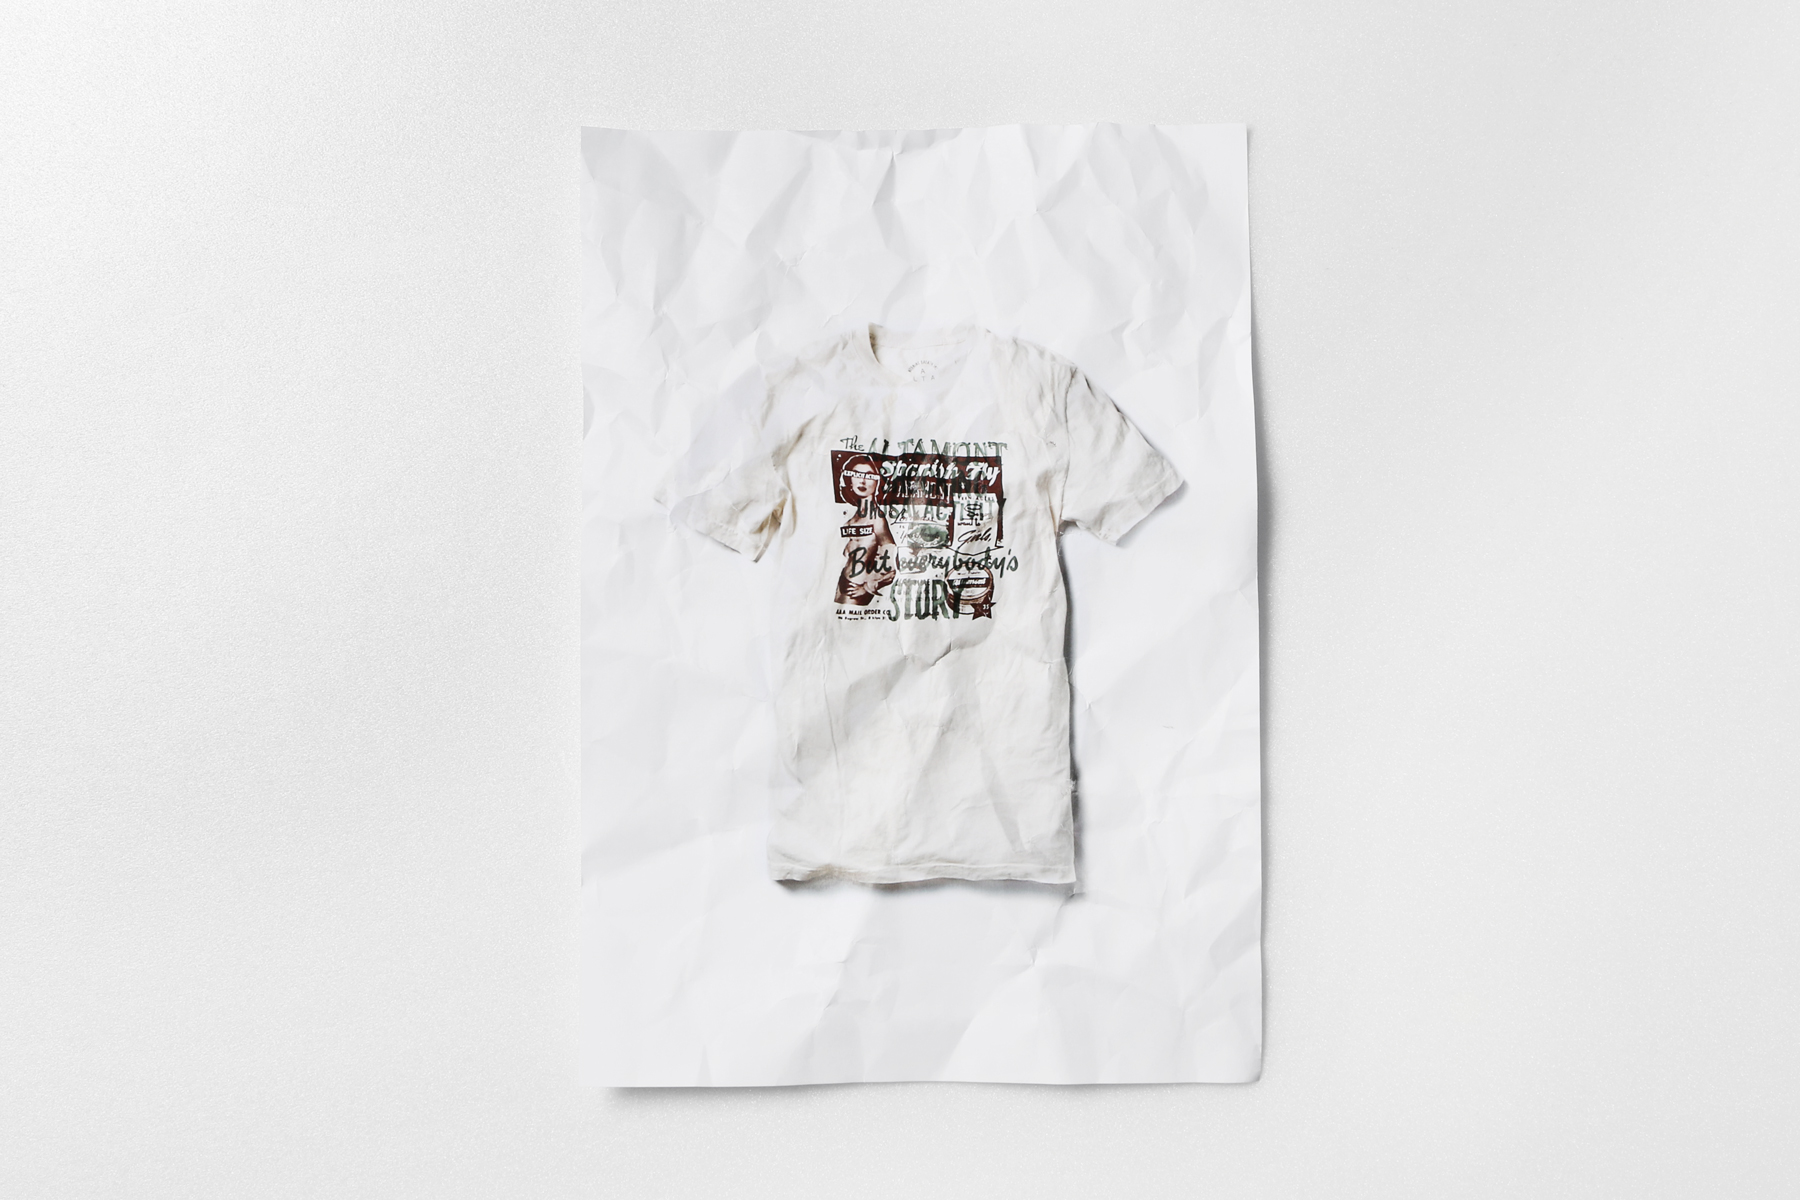 morning breath inc x altamont t shirts